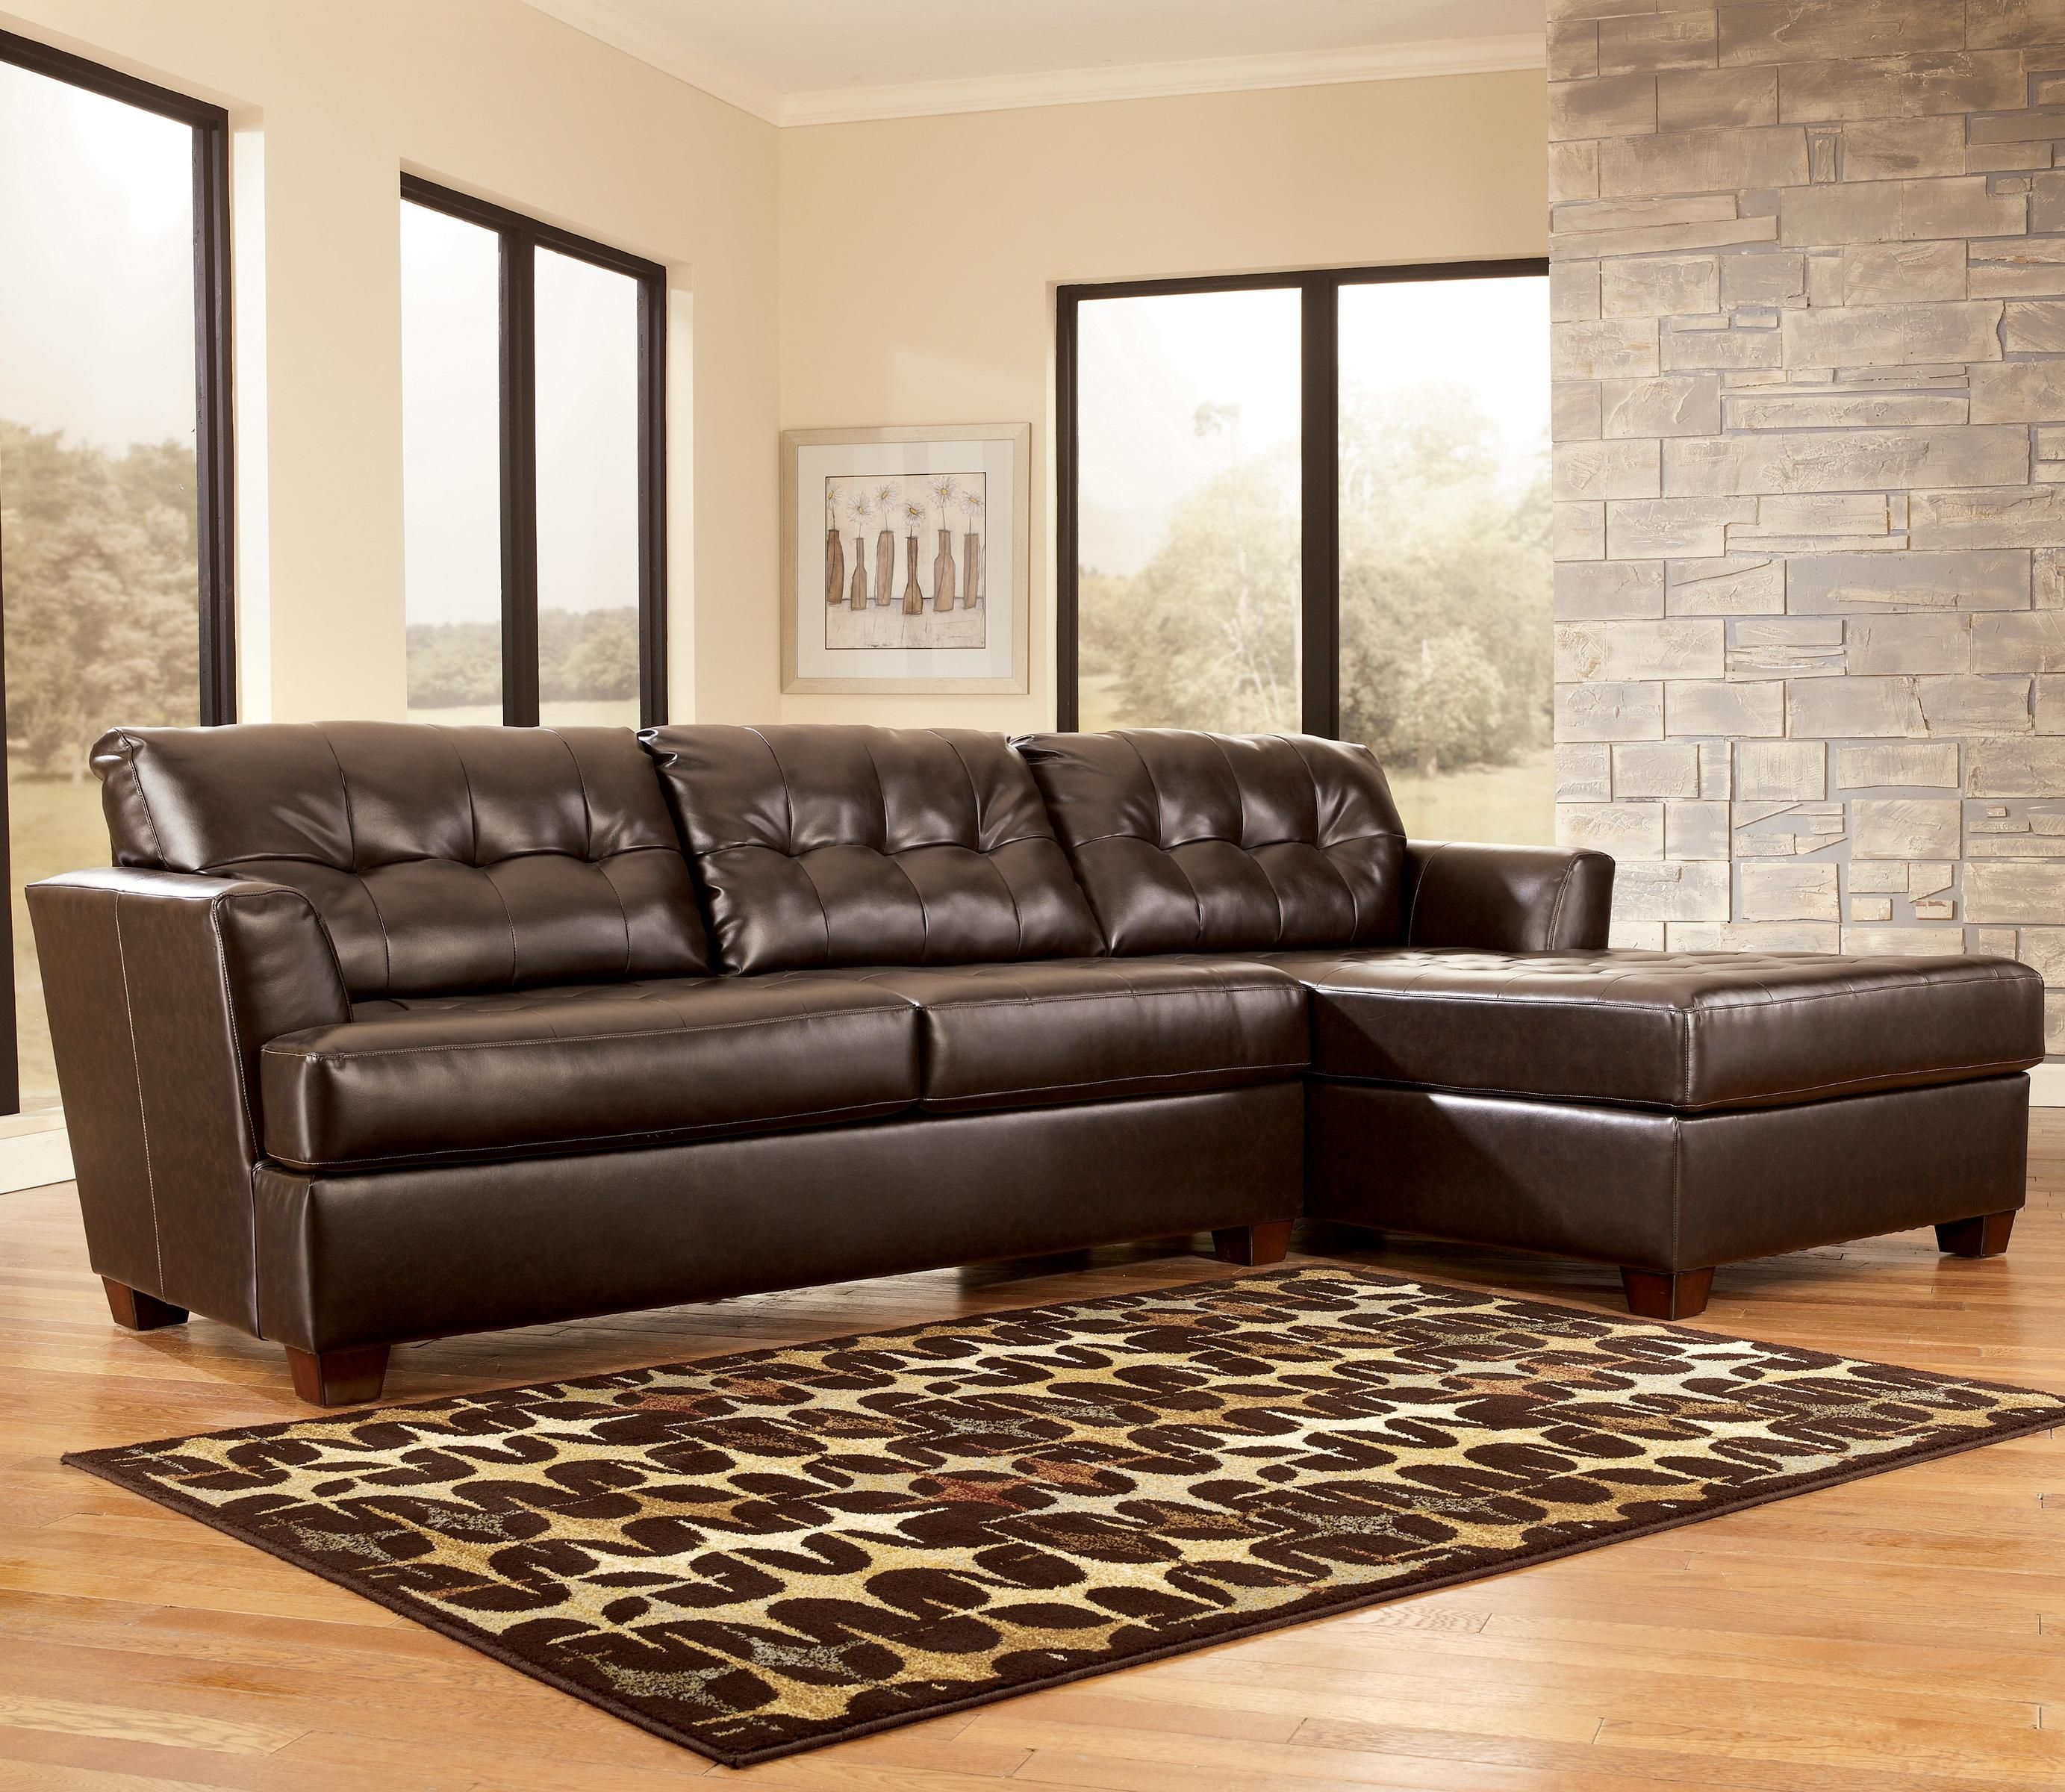 Dixon DuraBlend Chocolate Sectional Sofa By Signature Design By Ashley Furniture 79995